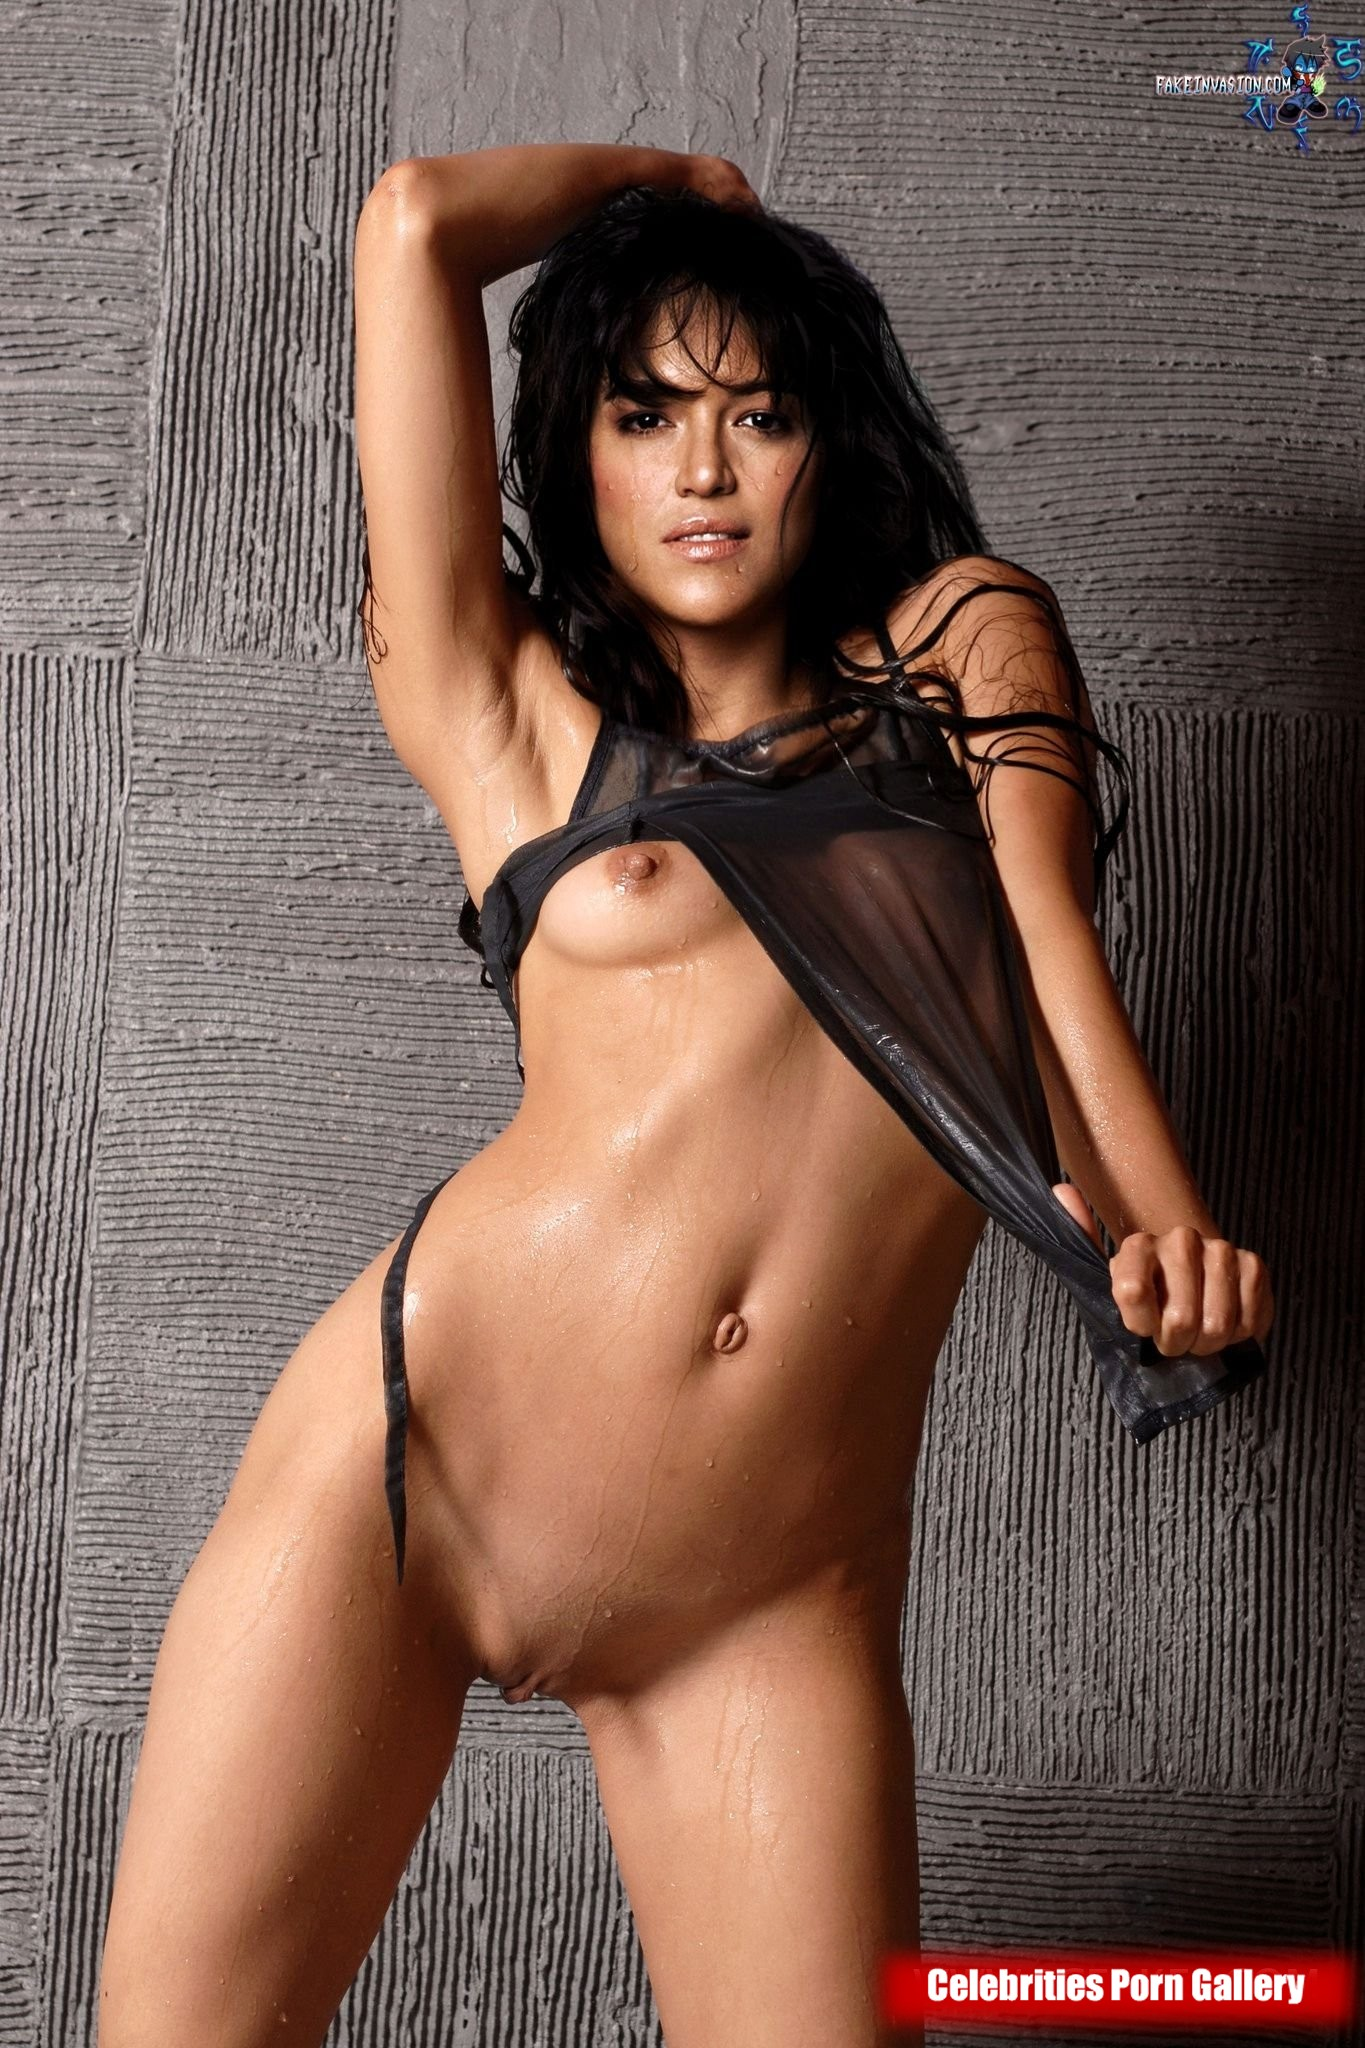 Michelle rodriguez naked porn pic regret, that